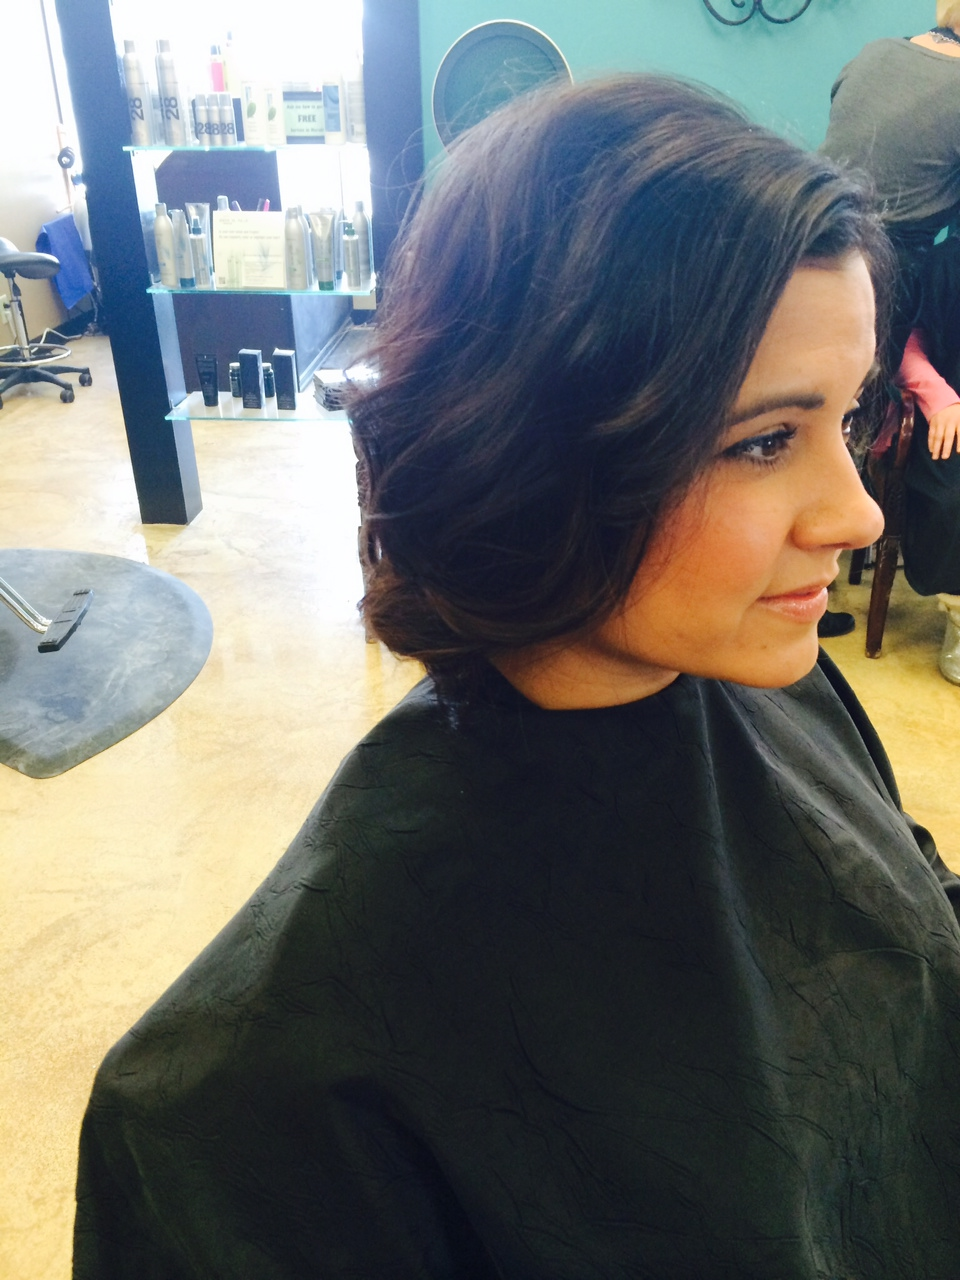 how to cut your hair short without clippers